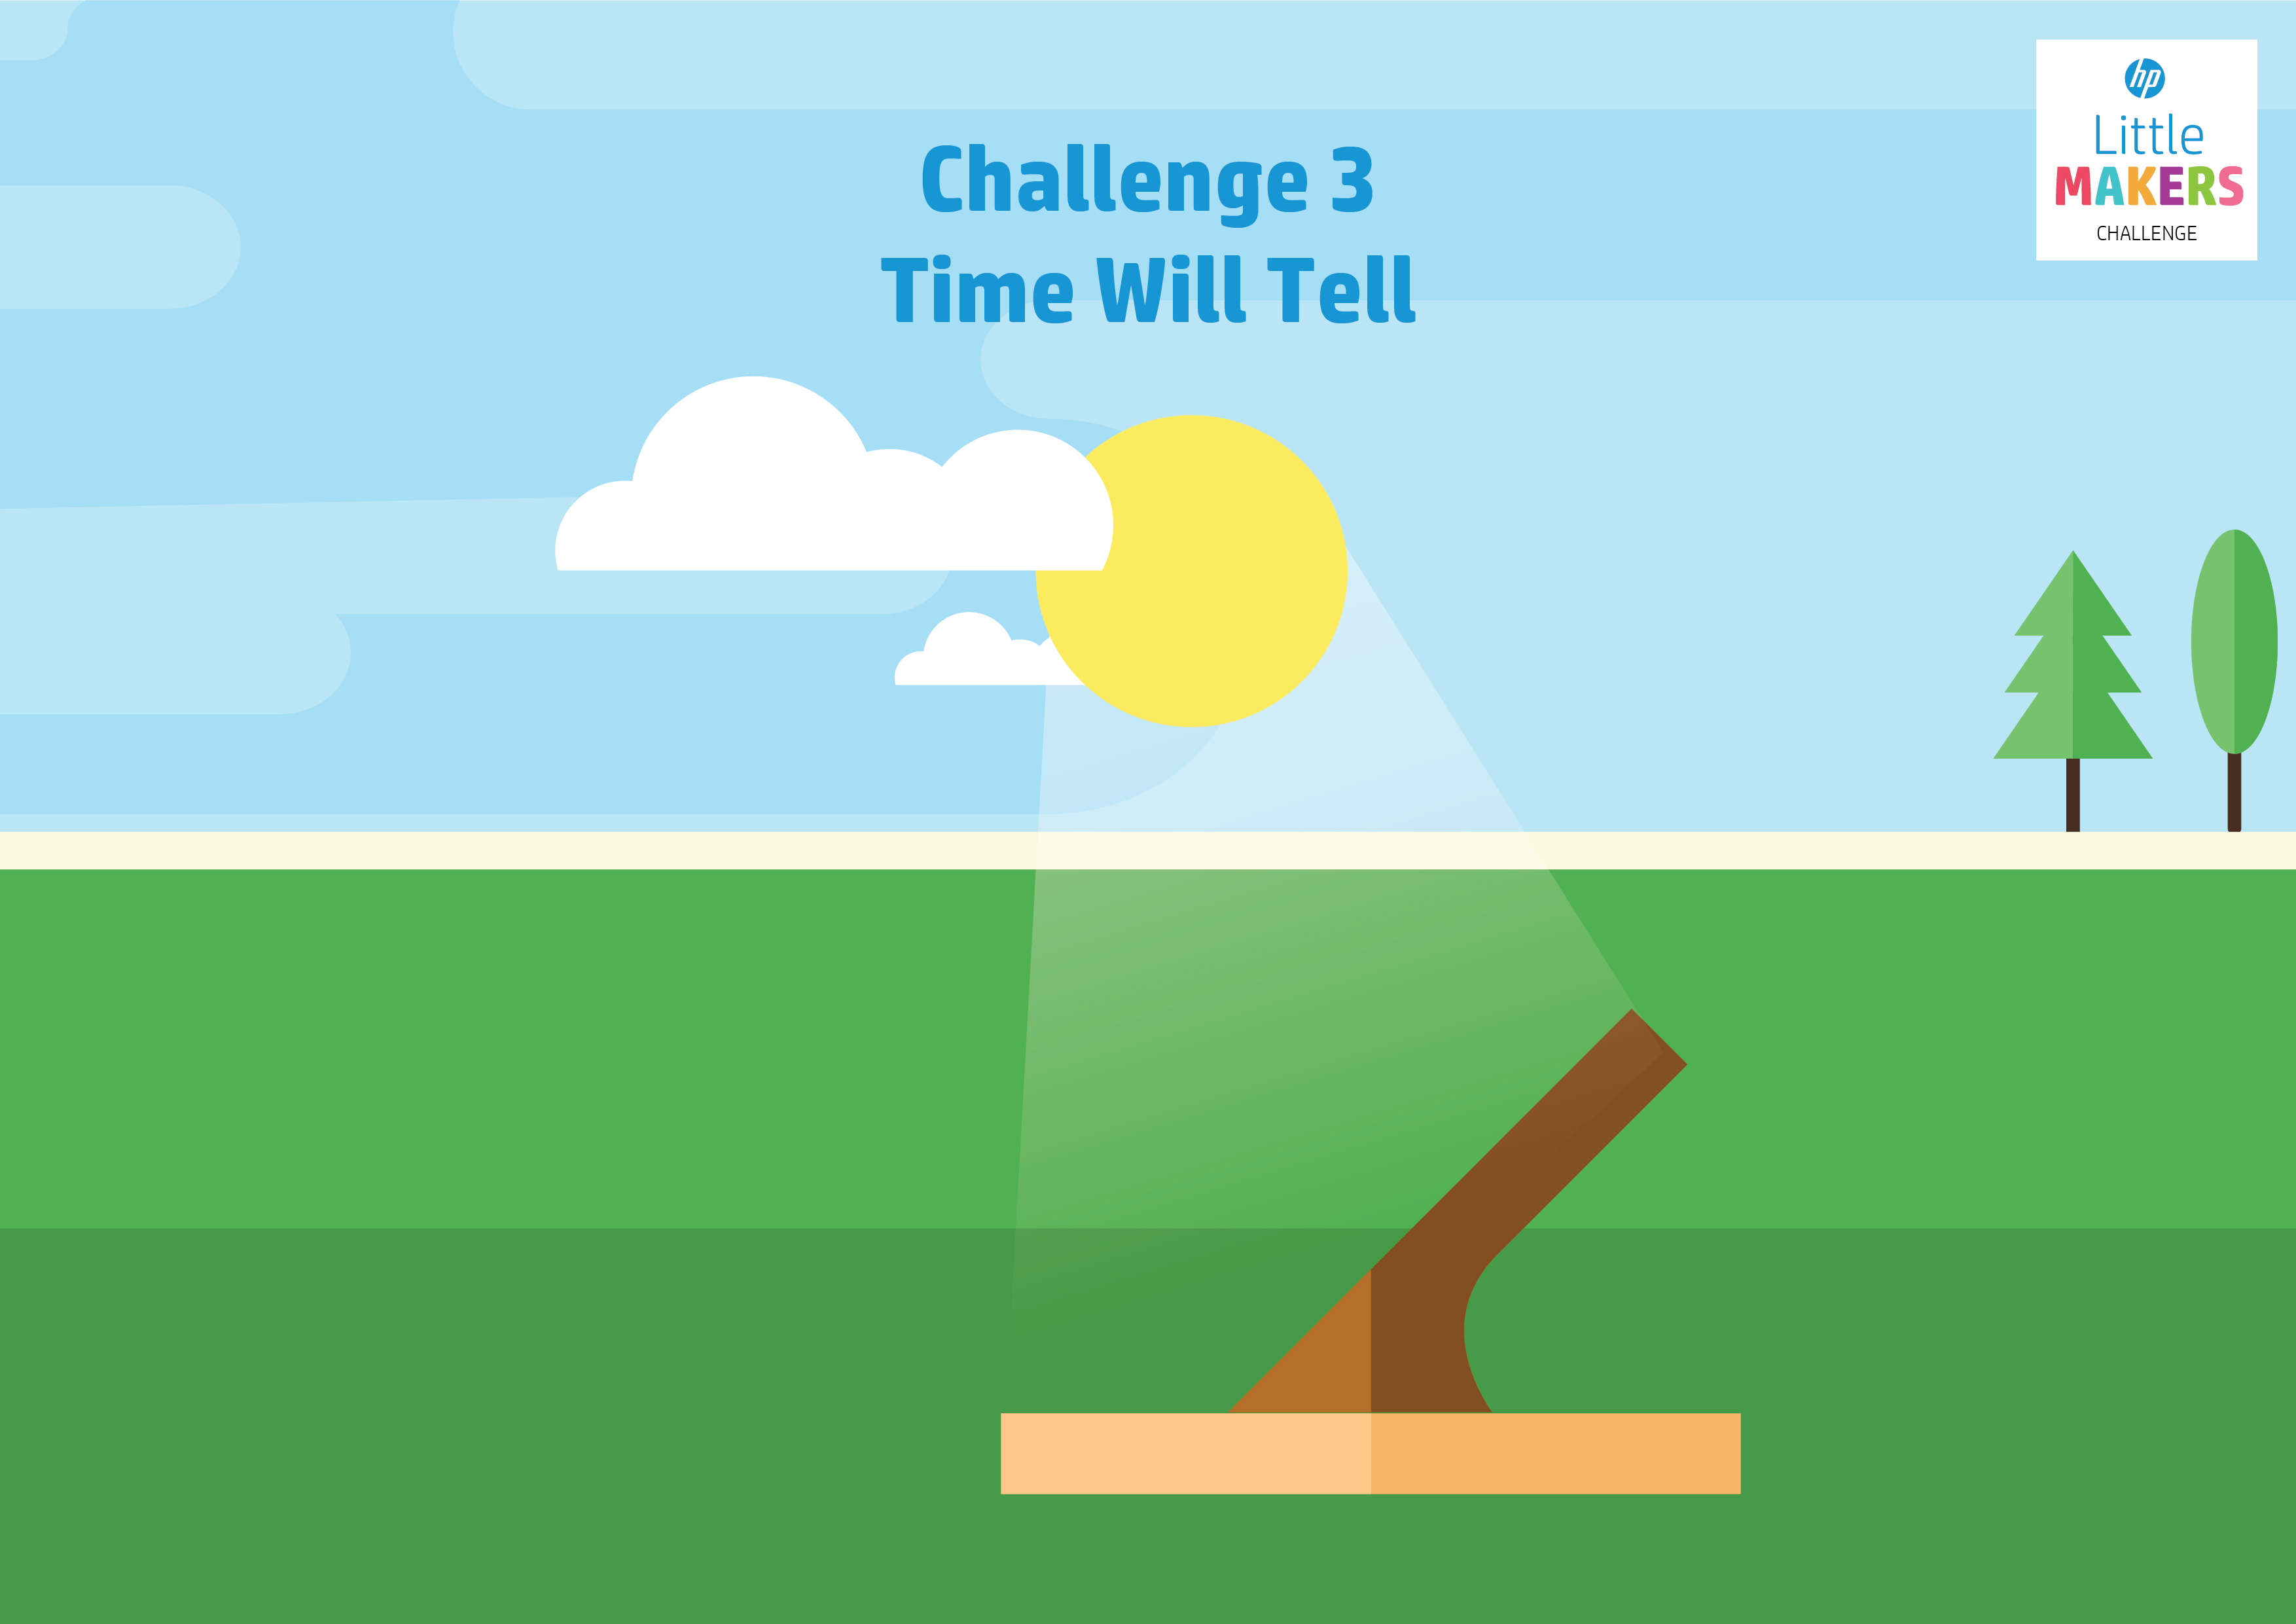 Challenge 3: Time Will Tell